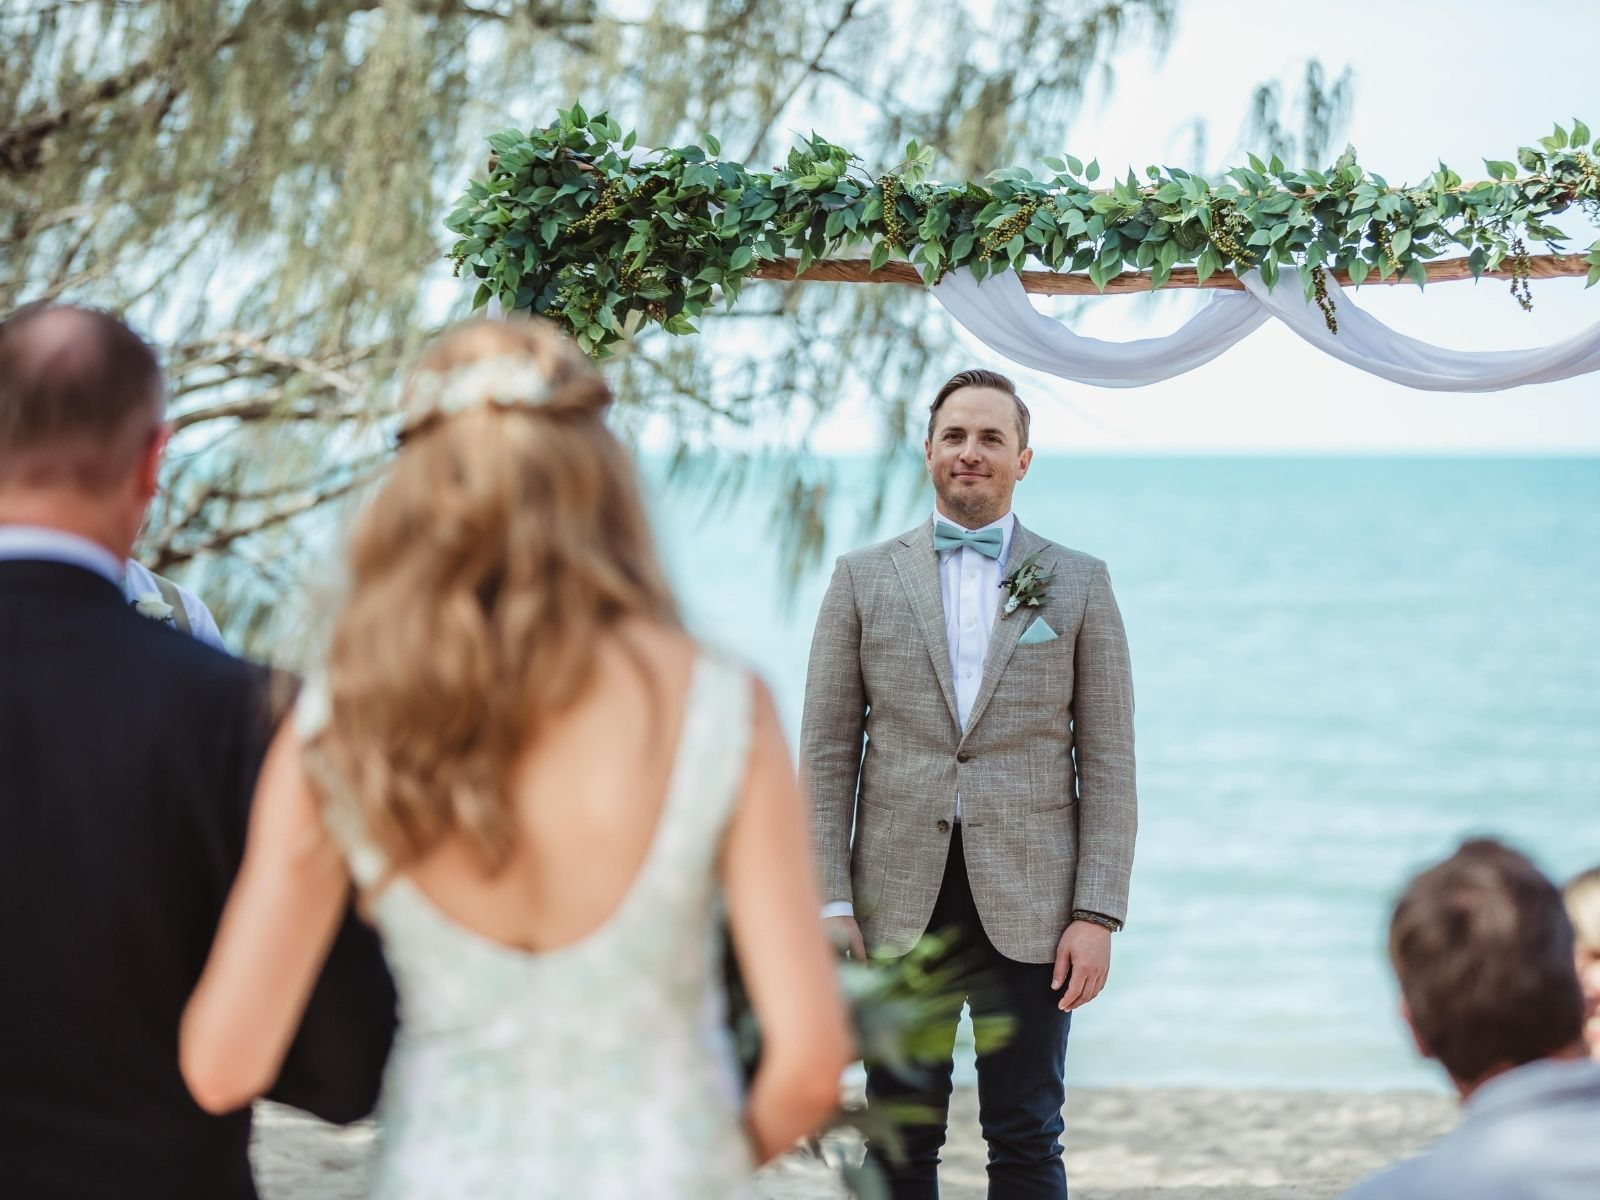 Groom sees bride for the first time as she walks down the aisle at Paradise Cove Resort in the Whitsundays